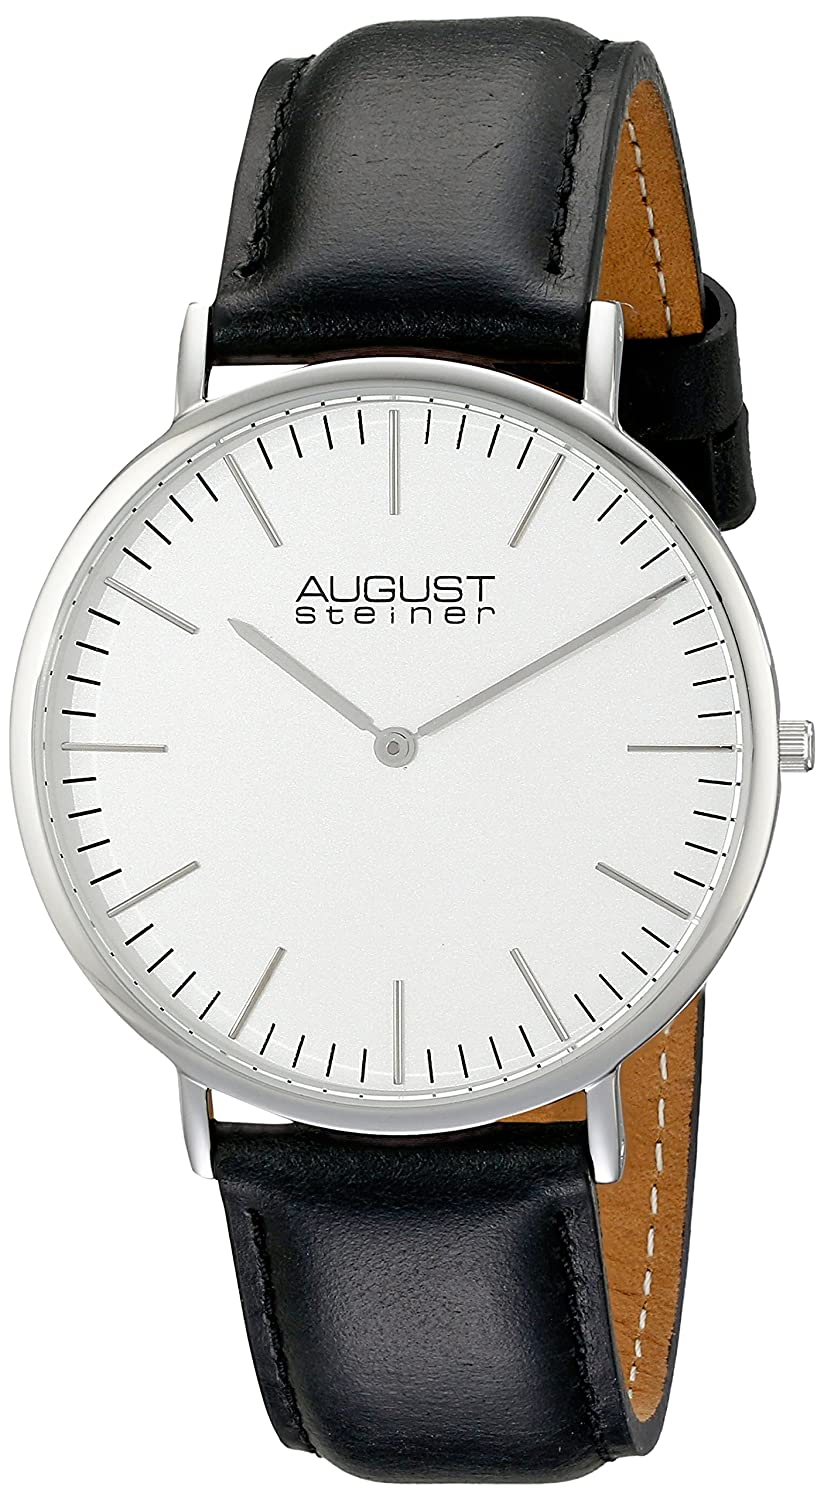 August Steiner Herren-Armbanduhr AS8084XBK Analog Quarz